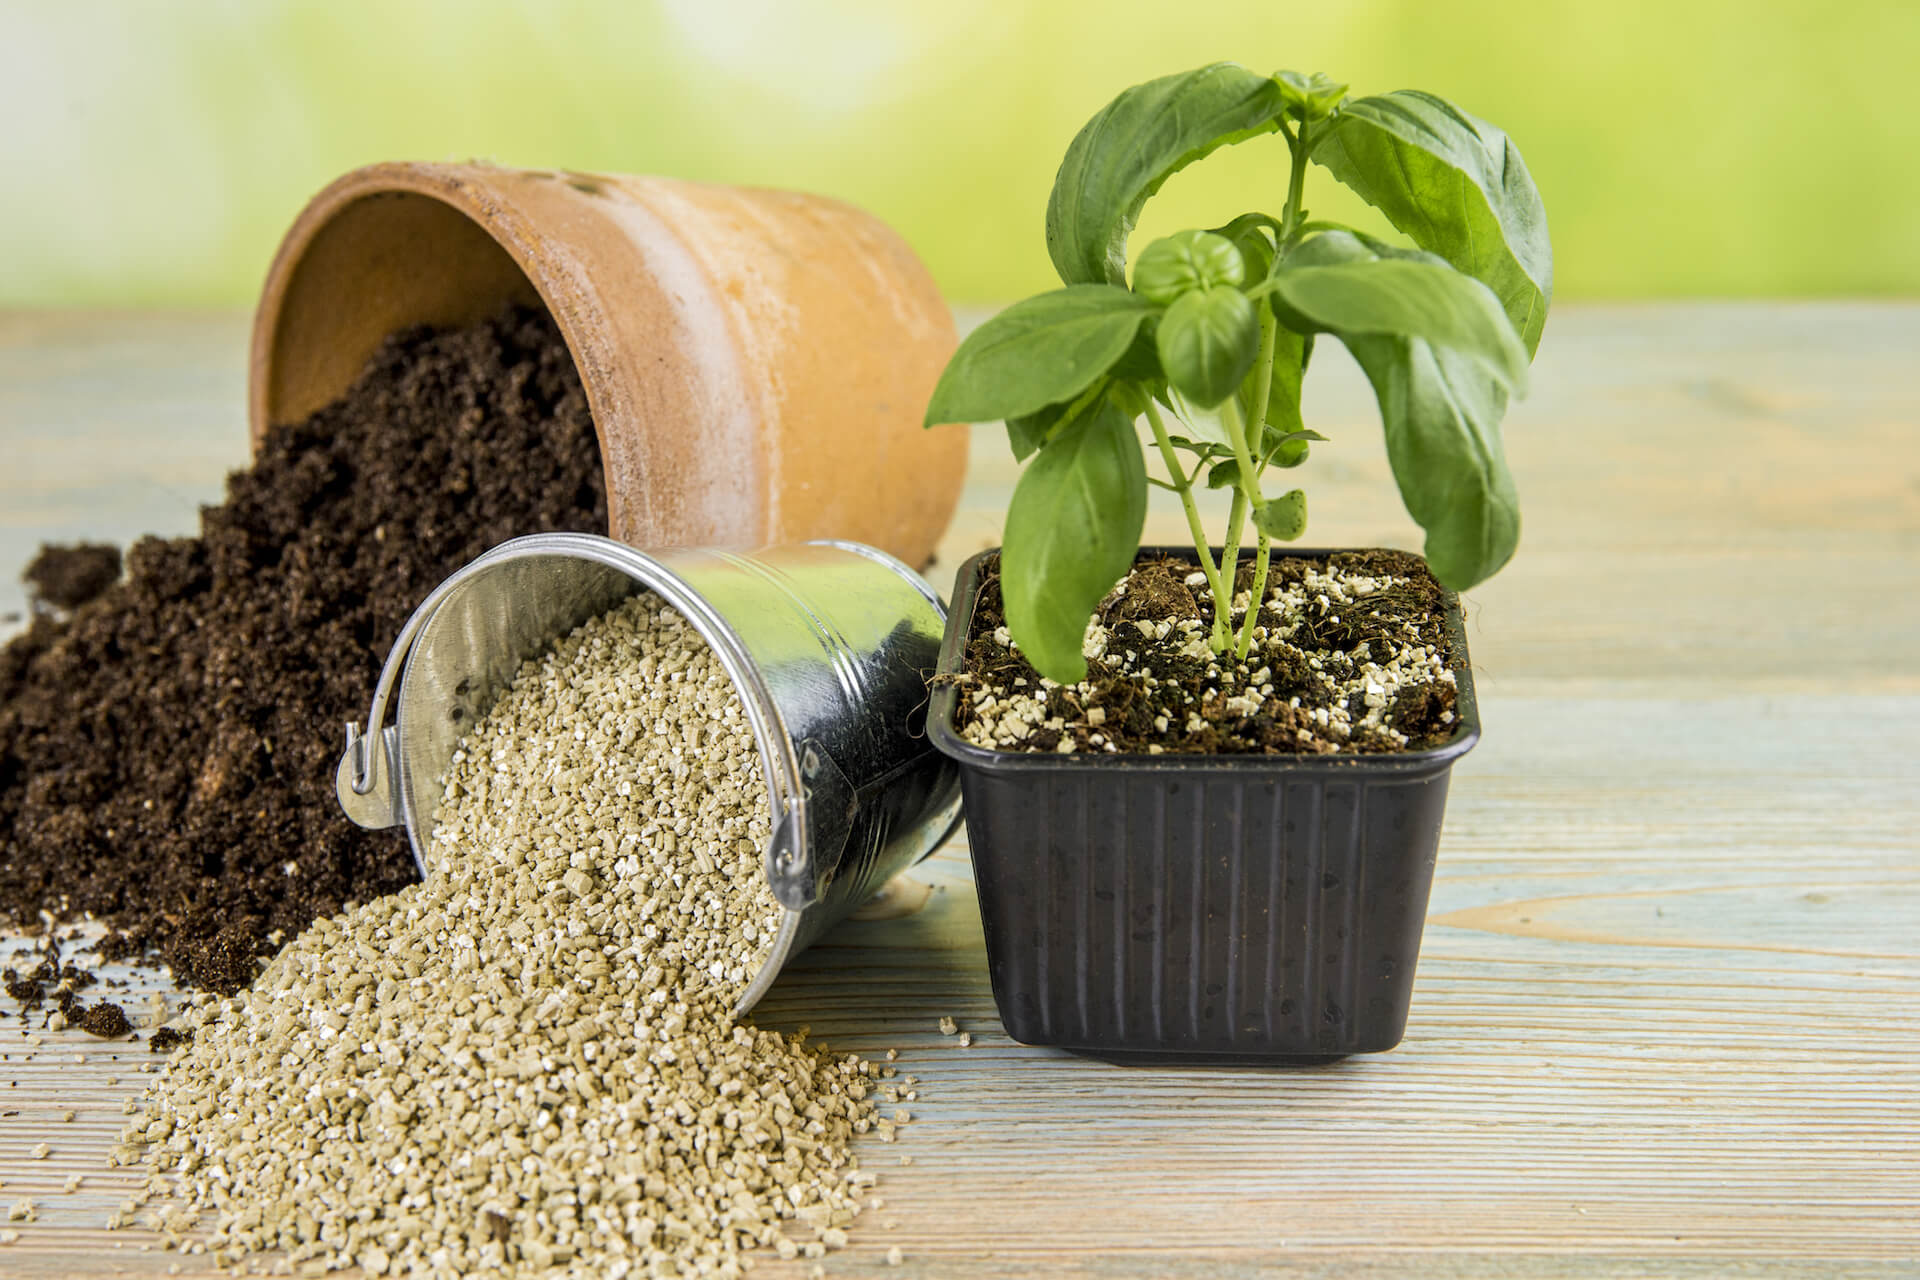 Tipped over bucket of vermiculite and tipped over pot of soil next to a sprouting plant.